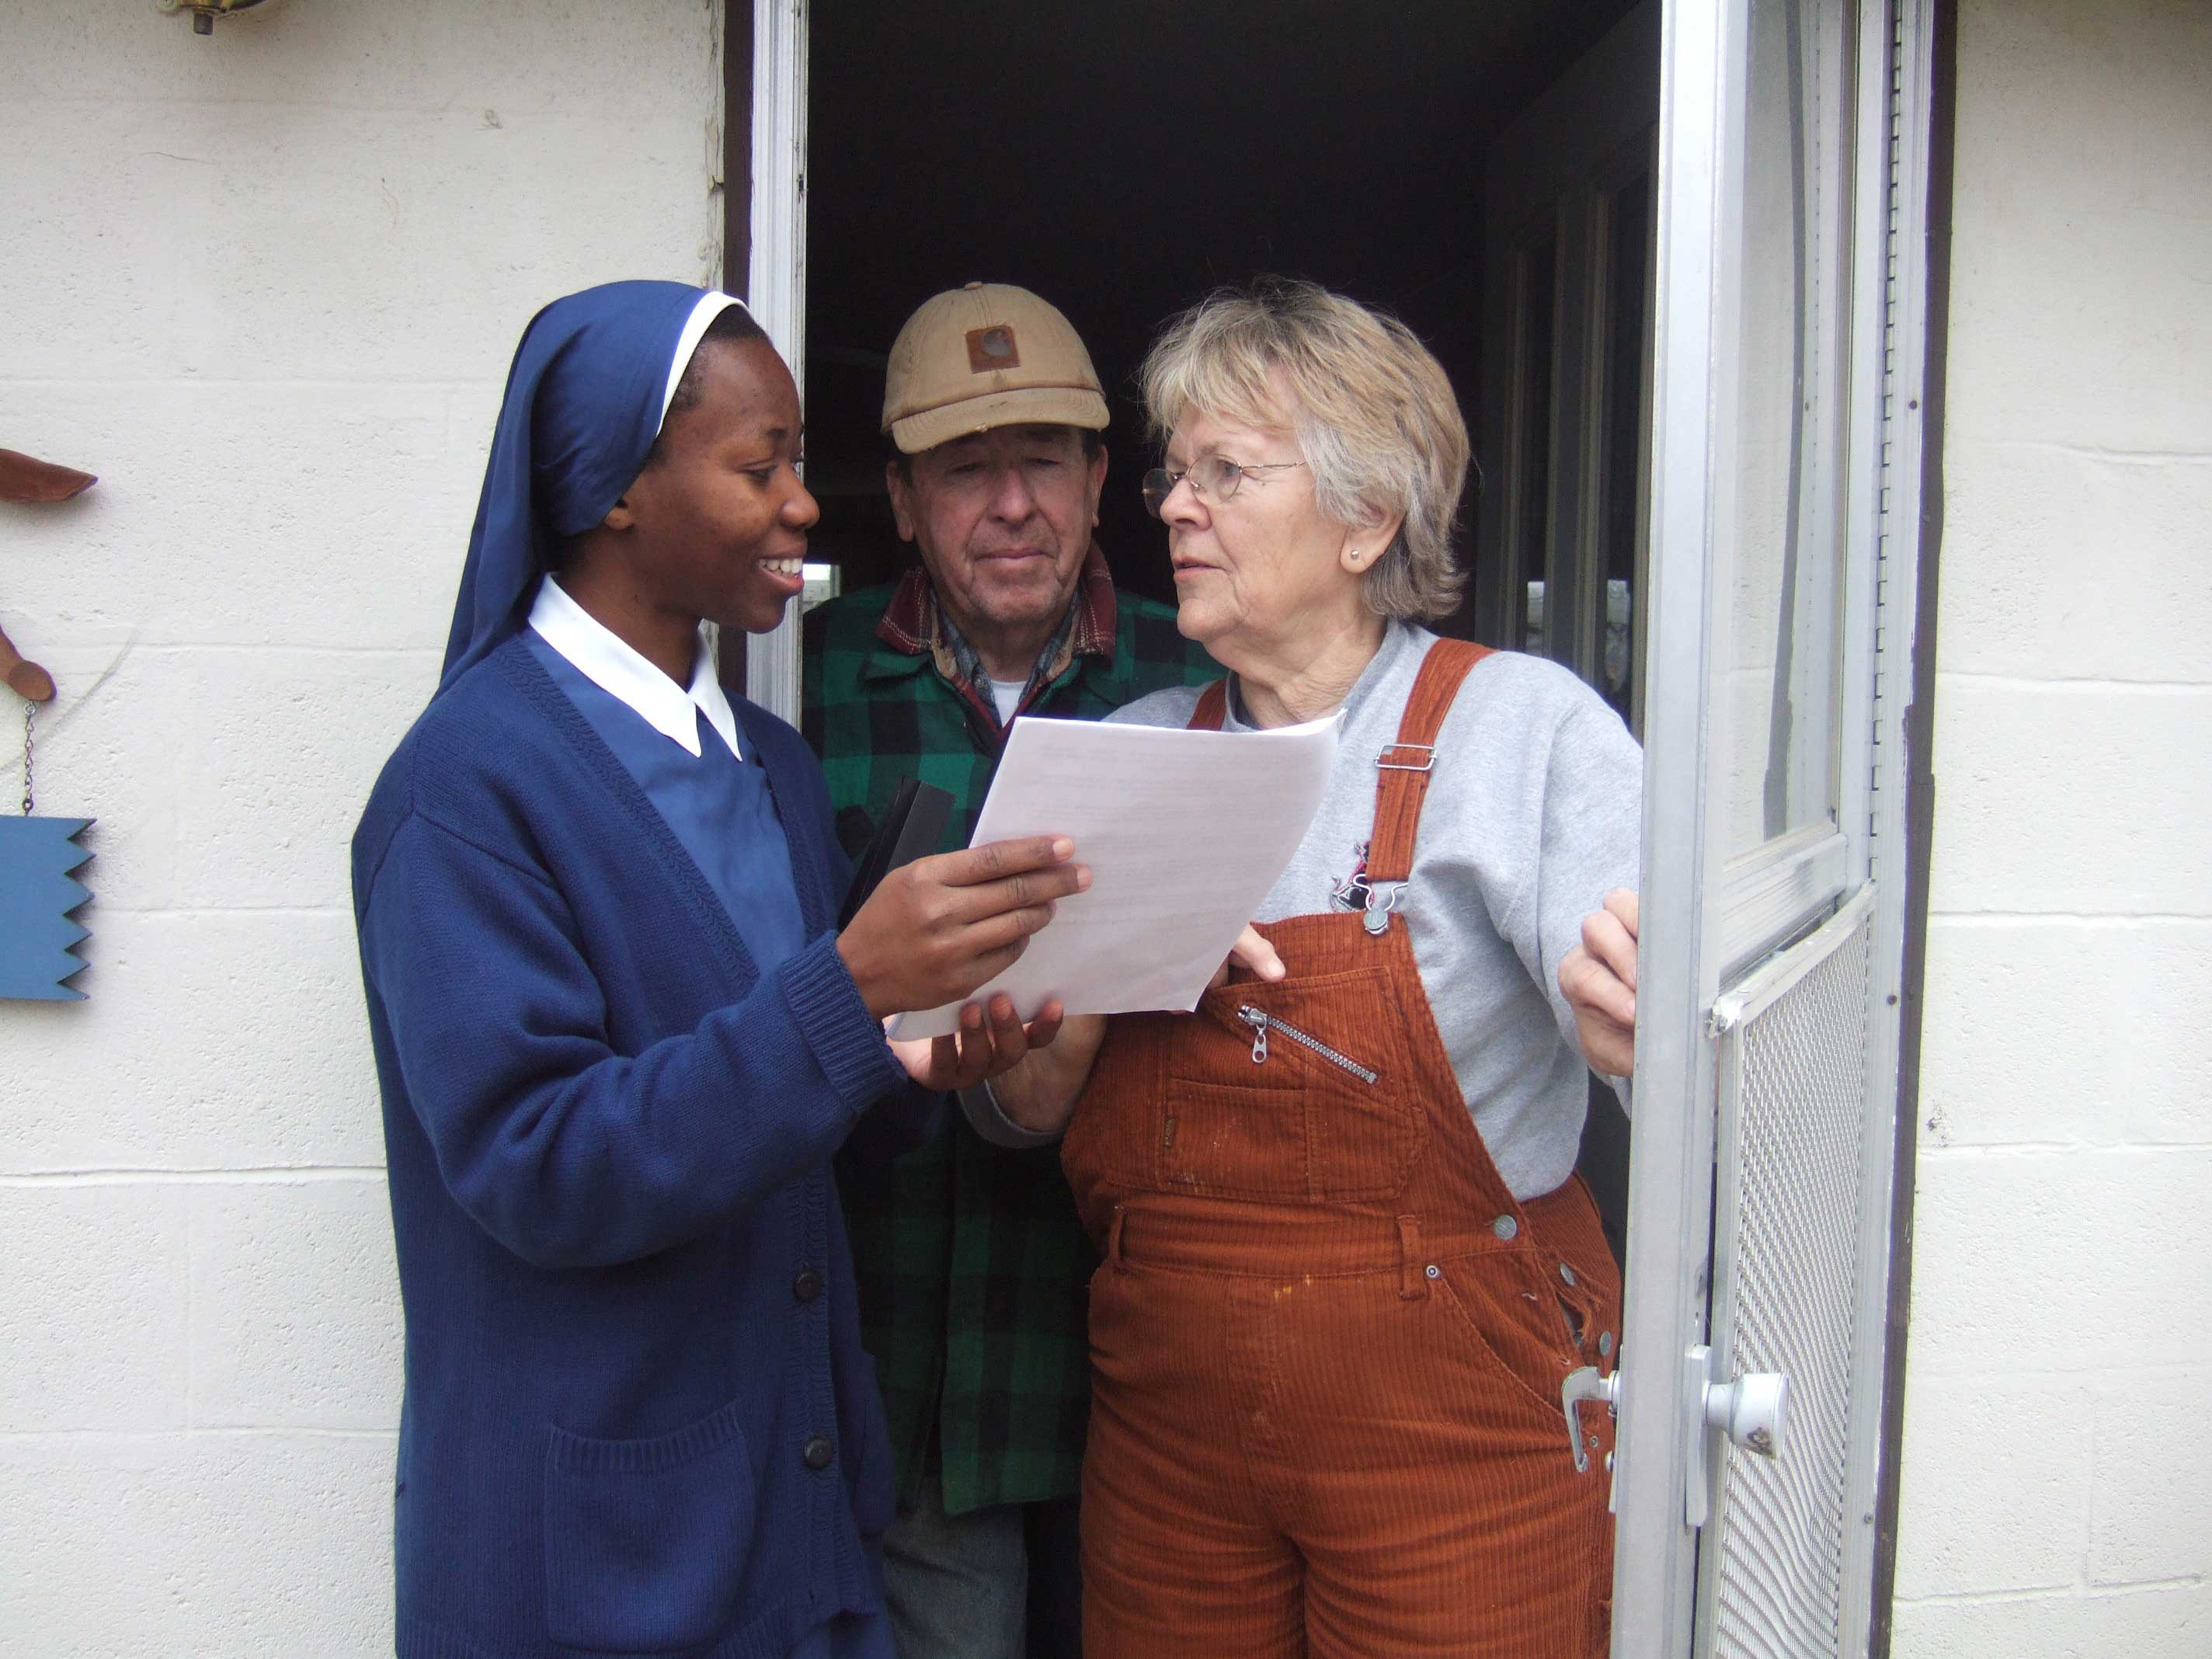 DOOR-TO-DOOR EVANGELIZATIONu2014Sr. Dina Marie Egong SMP spoke with Mr. and Mrs. Carpenter farmers in Billings MO on the Catholic Faith during her ministry ...  sc 1 st  Diocese of Springfield-Cape Girardeau & The Society of Our Mother of Peace u2013 DioSCG